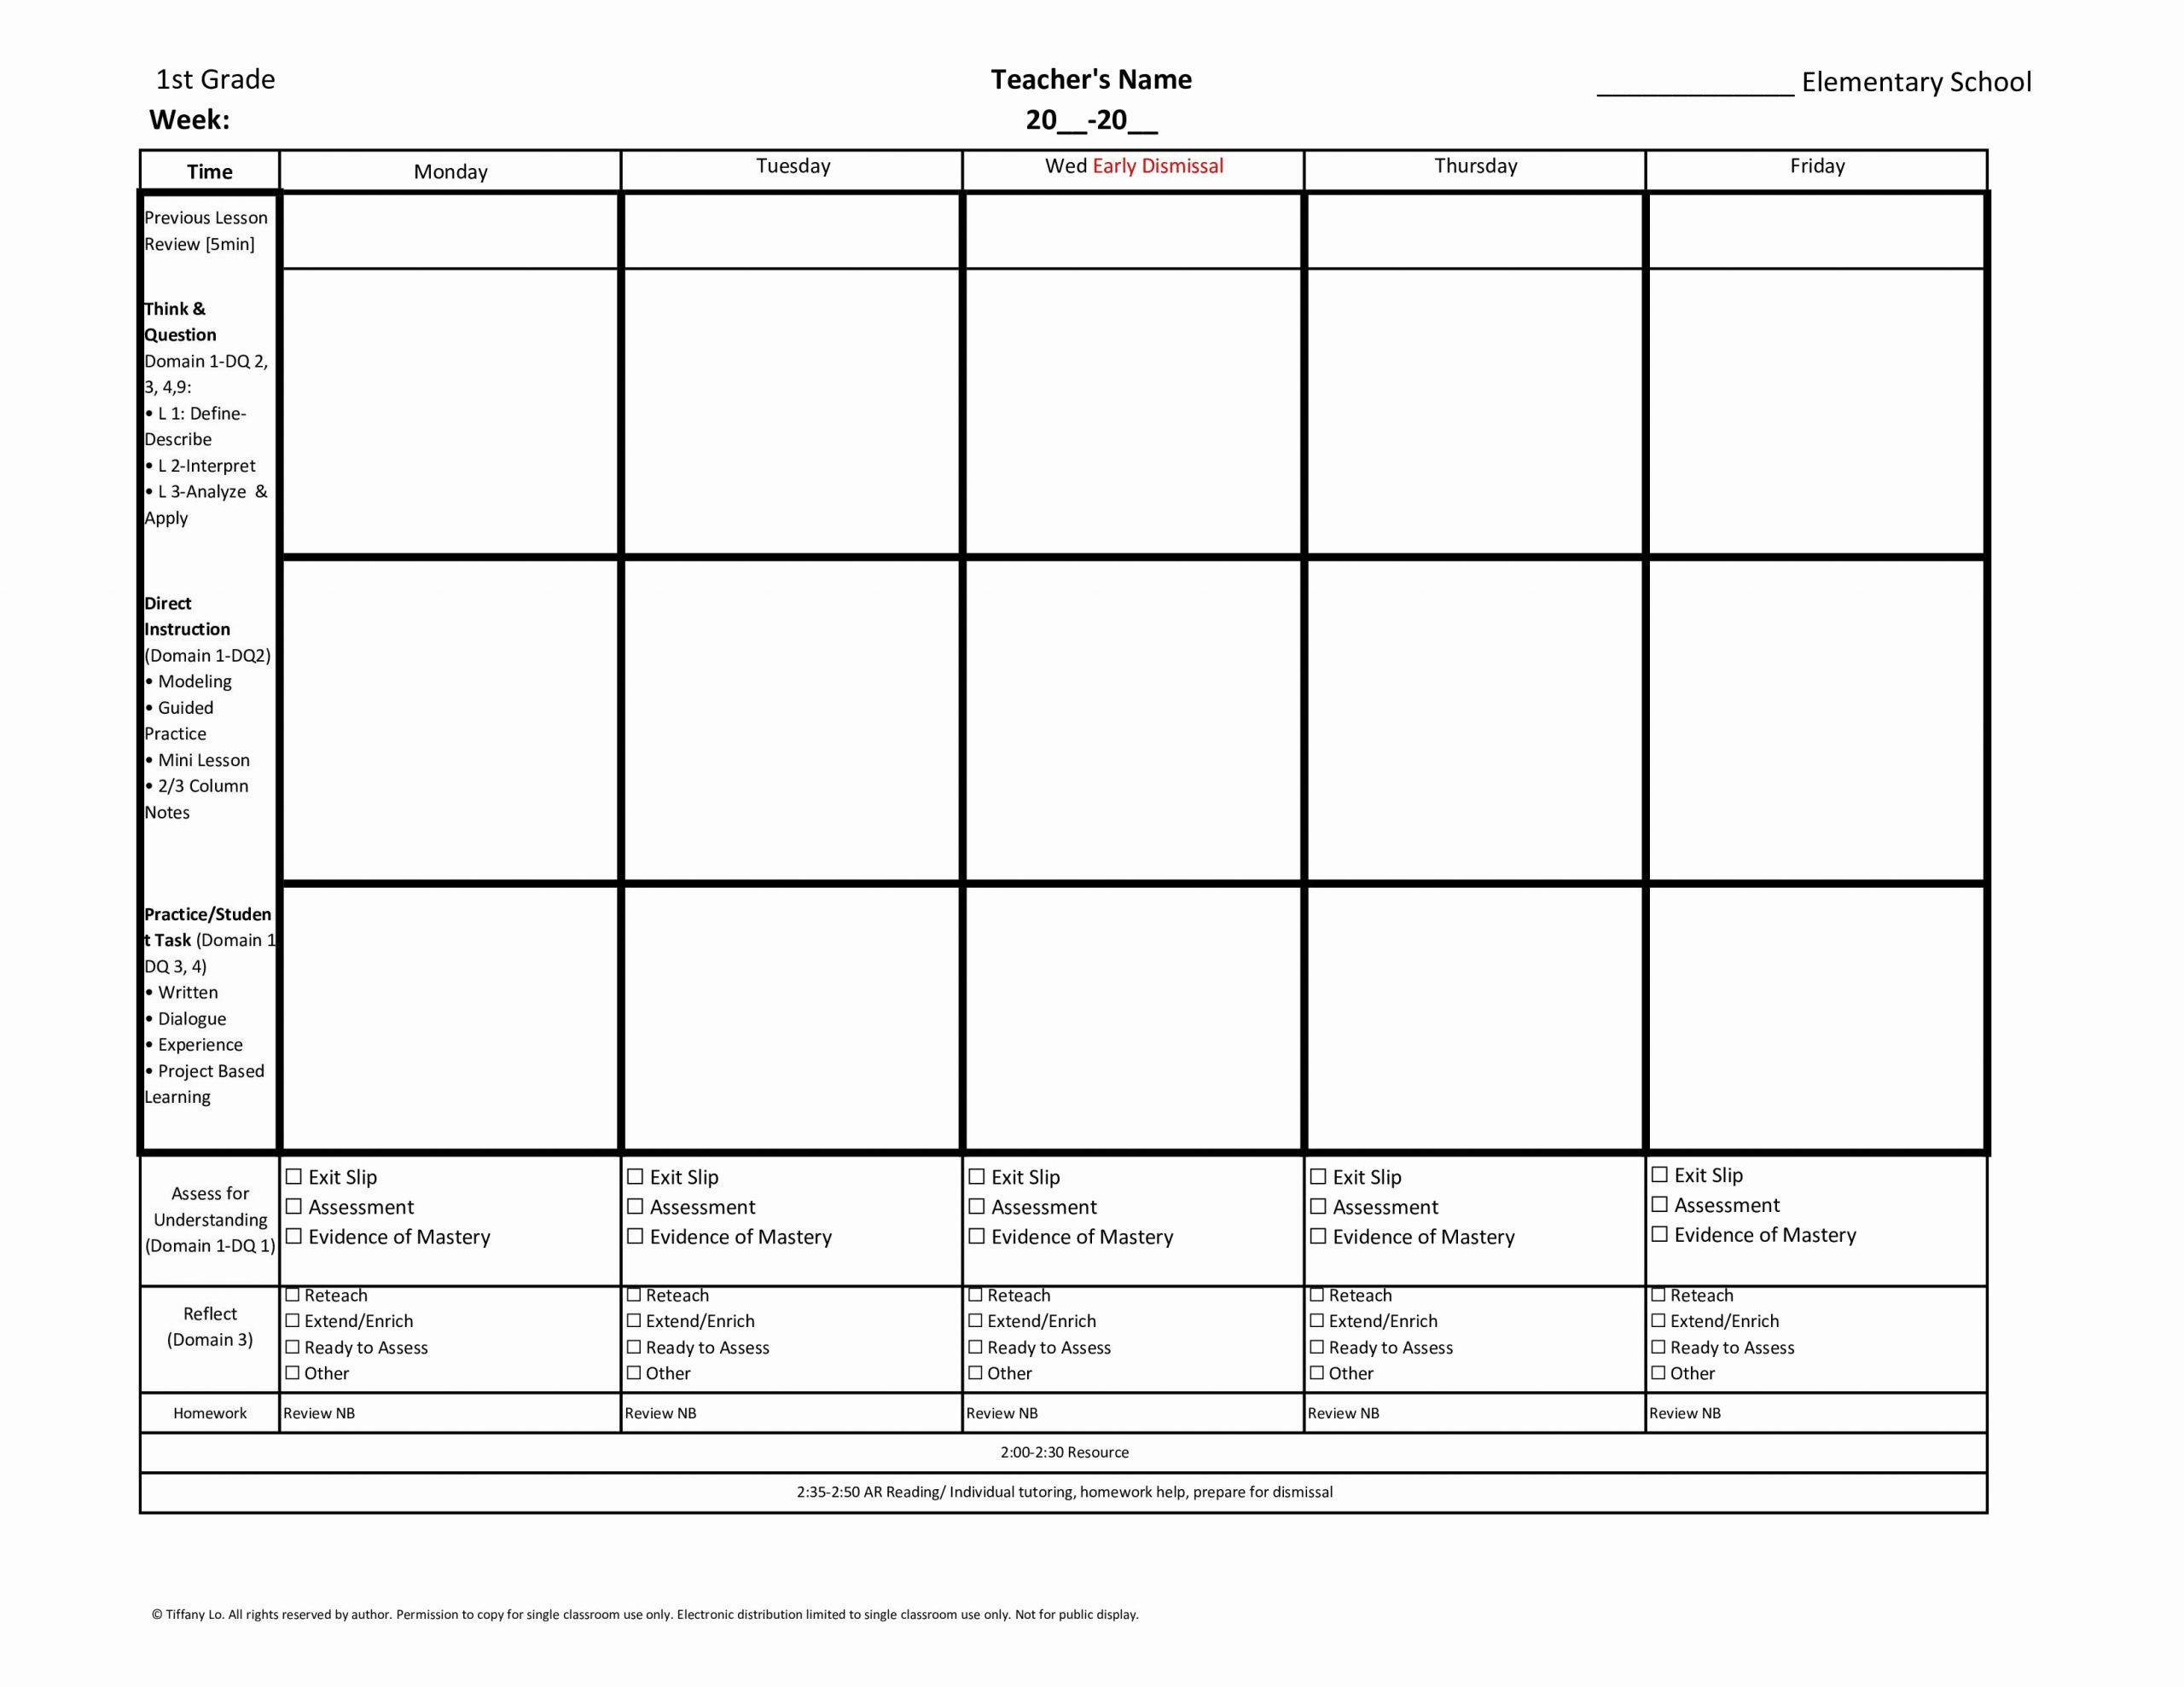 Elementary Weekly Lesson Plan Template Best Of 1st First Grade Weekly Lesson Plan Template W Florida